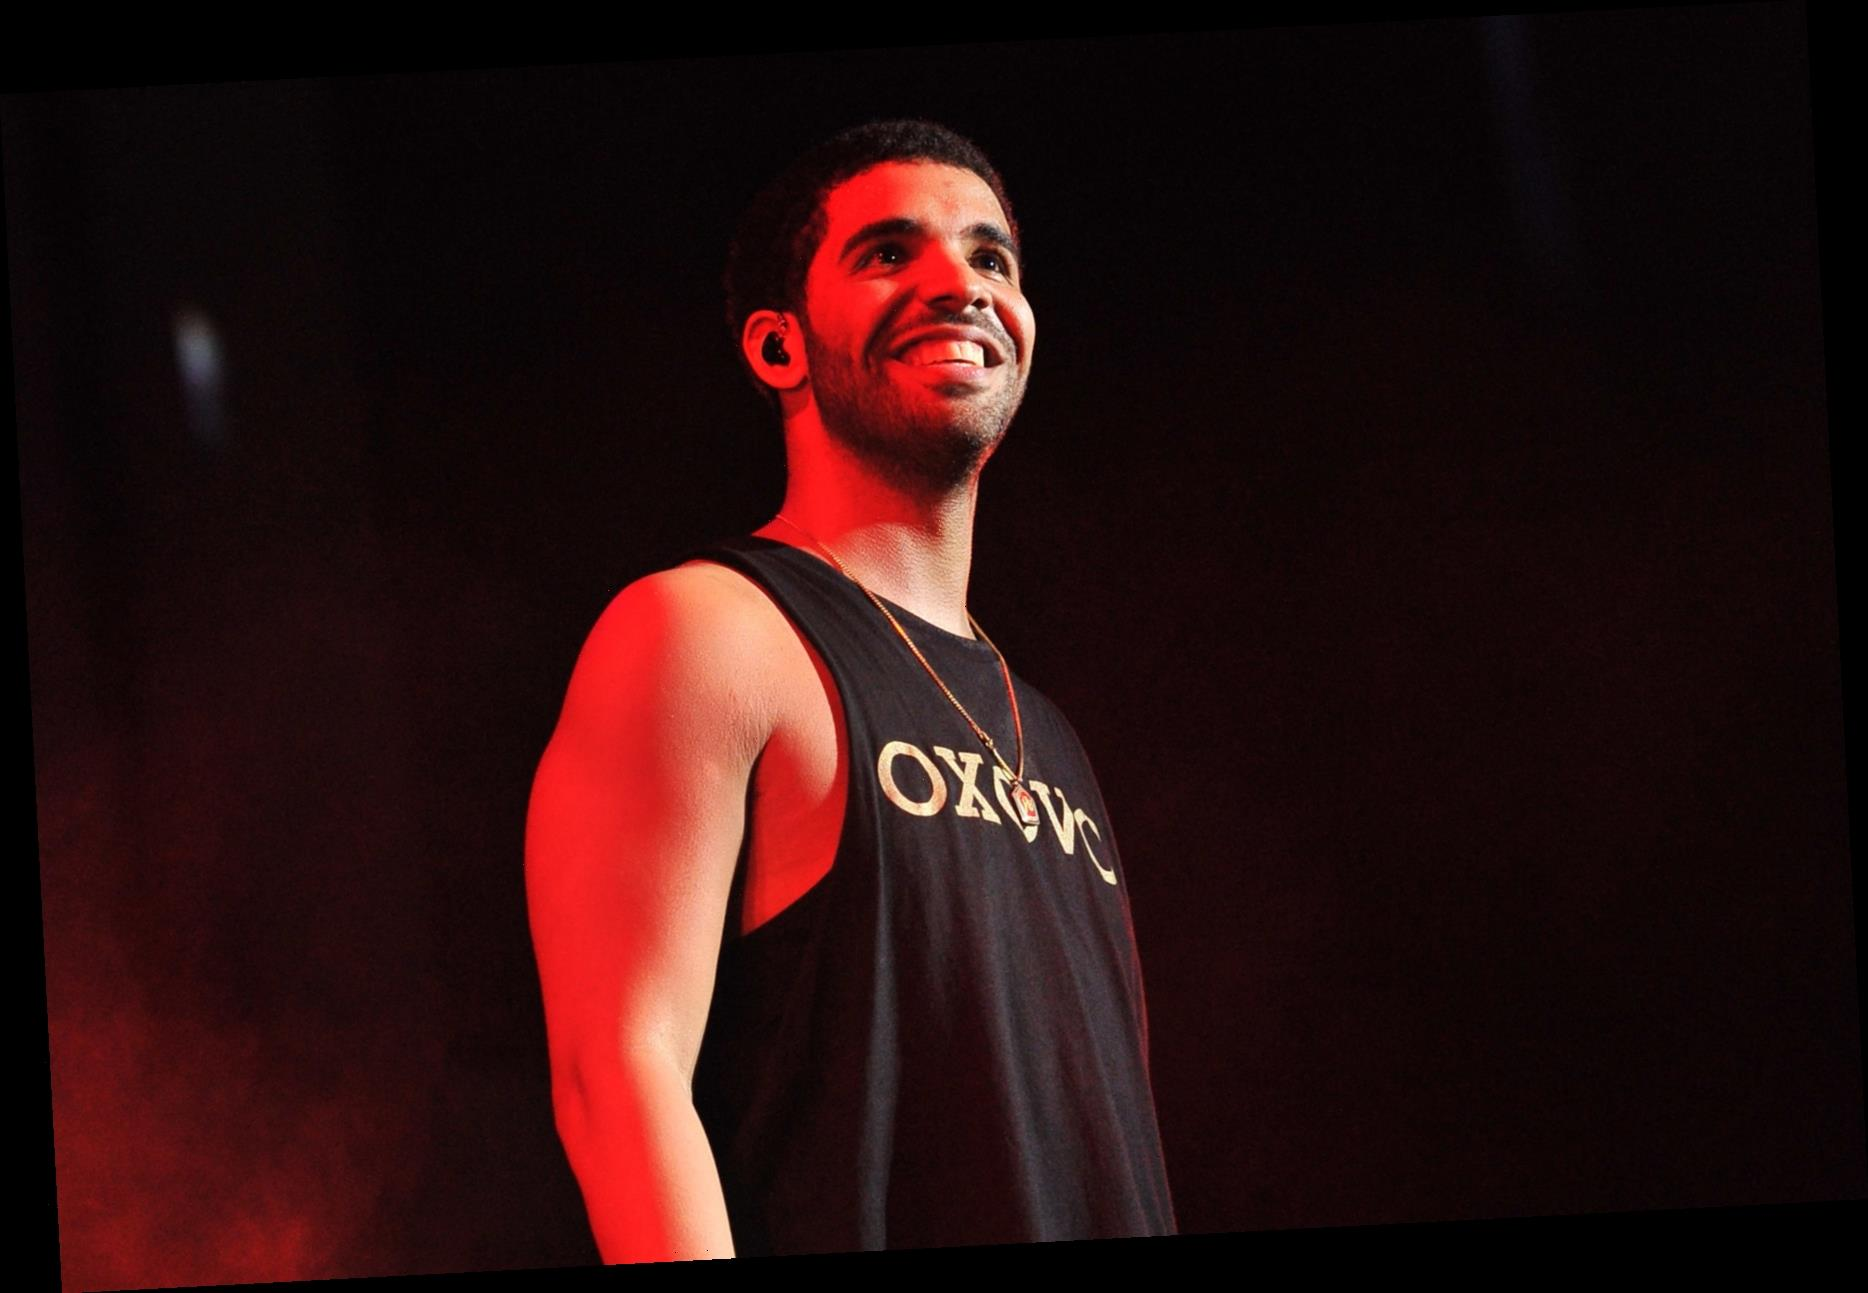 Rolling Stone 500: The Drake Era Kicks Into High Gear on 'Take Care'